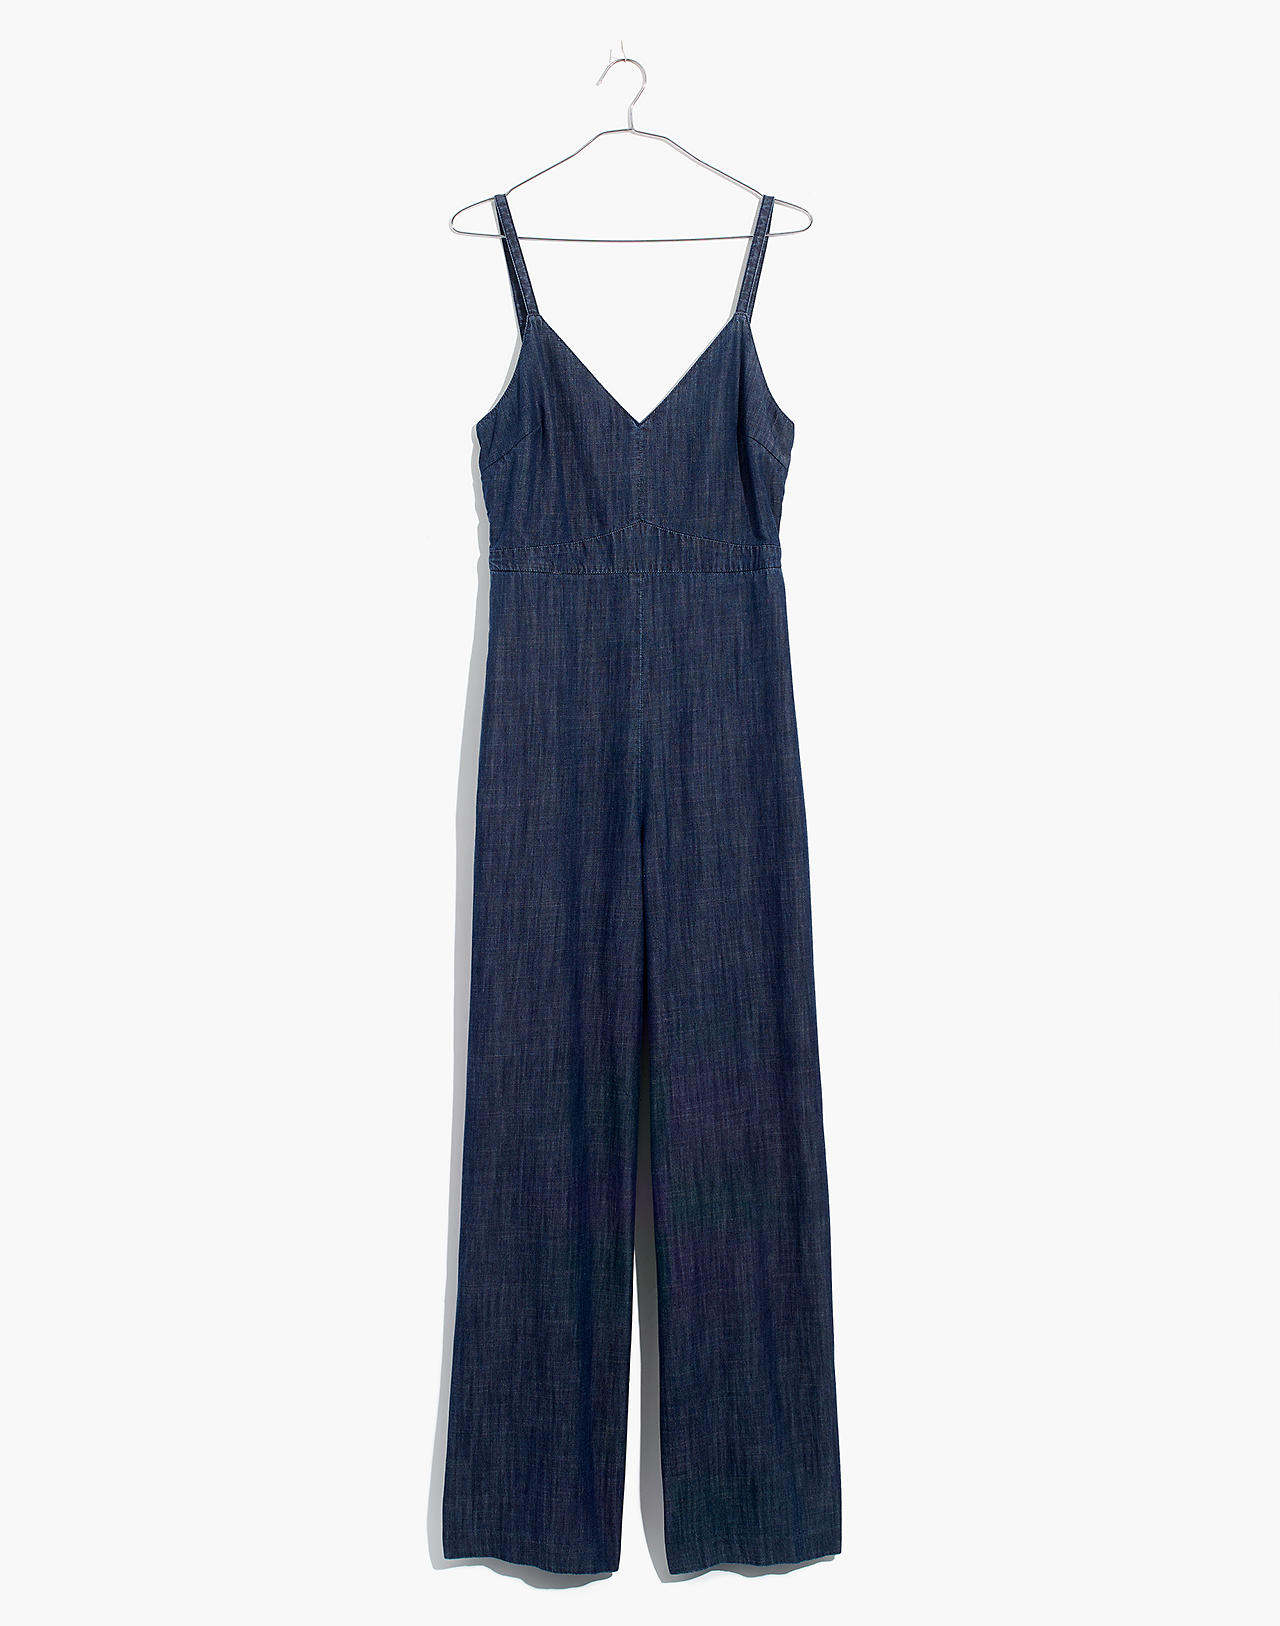 14ac65deb025 Denim Thistle Cami Jumpsuit in kenney wash image 4